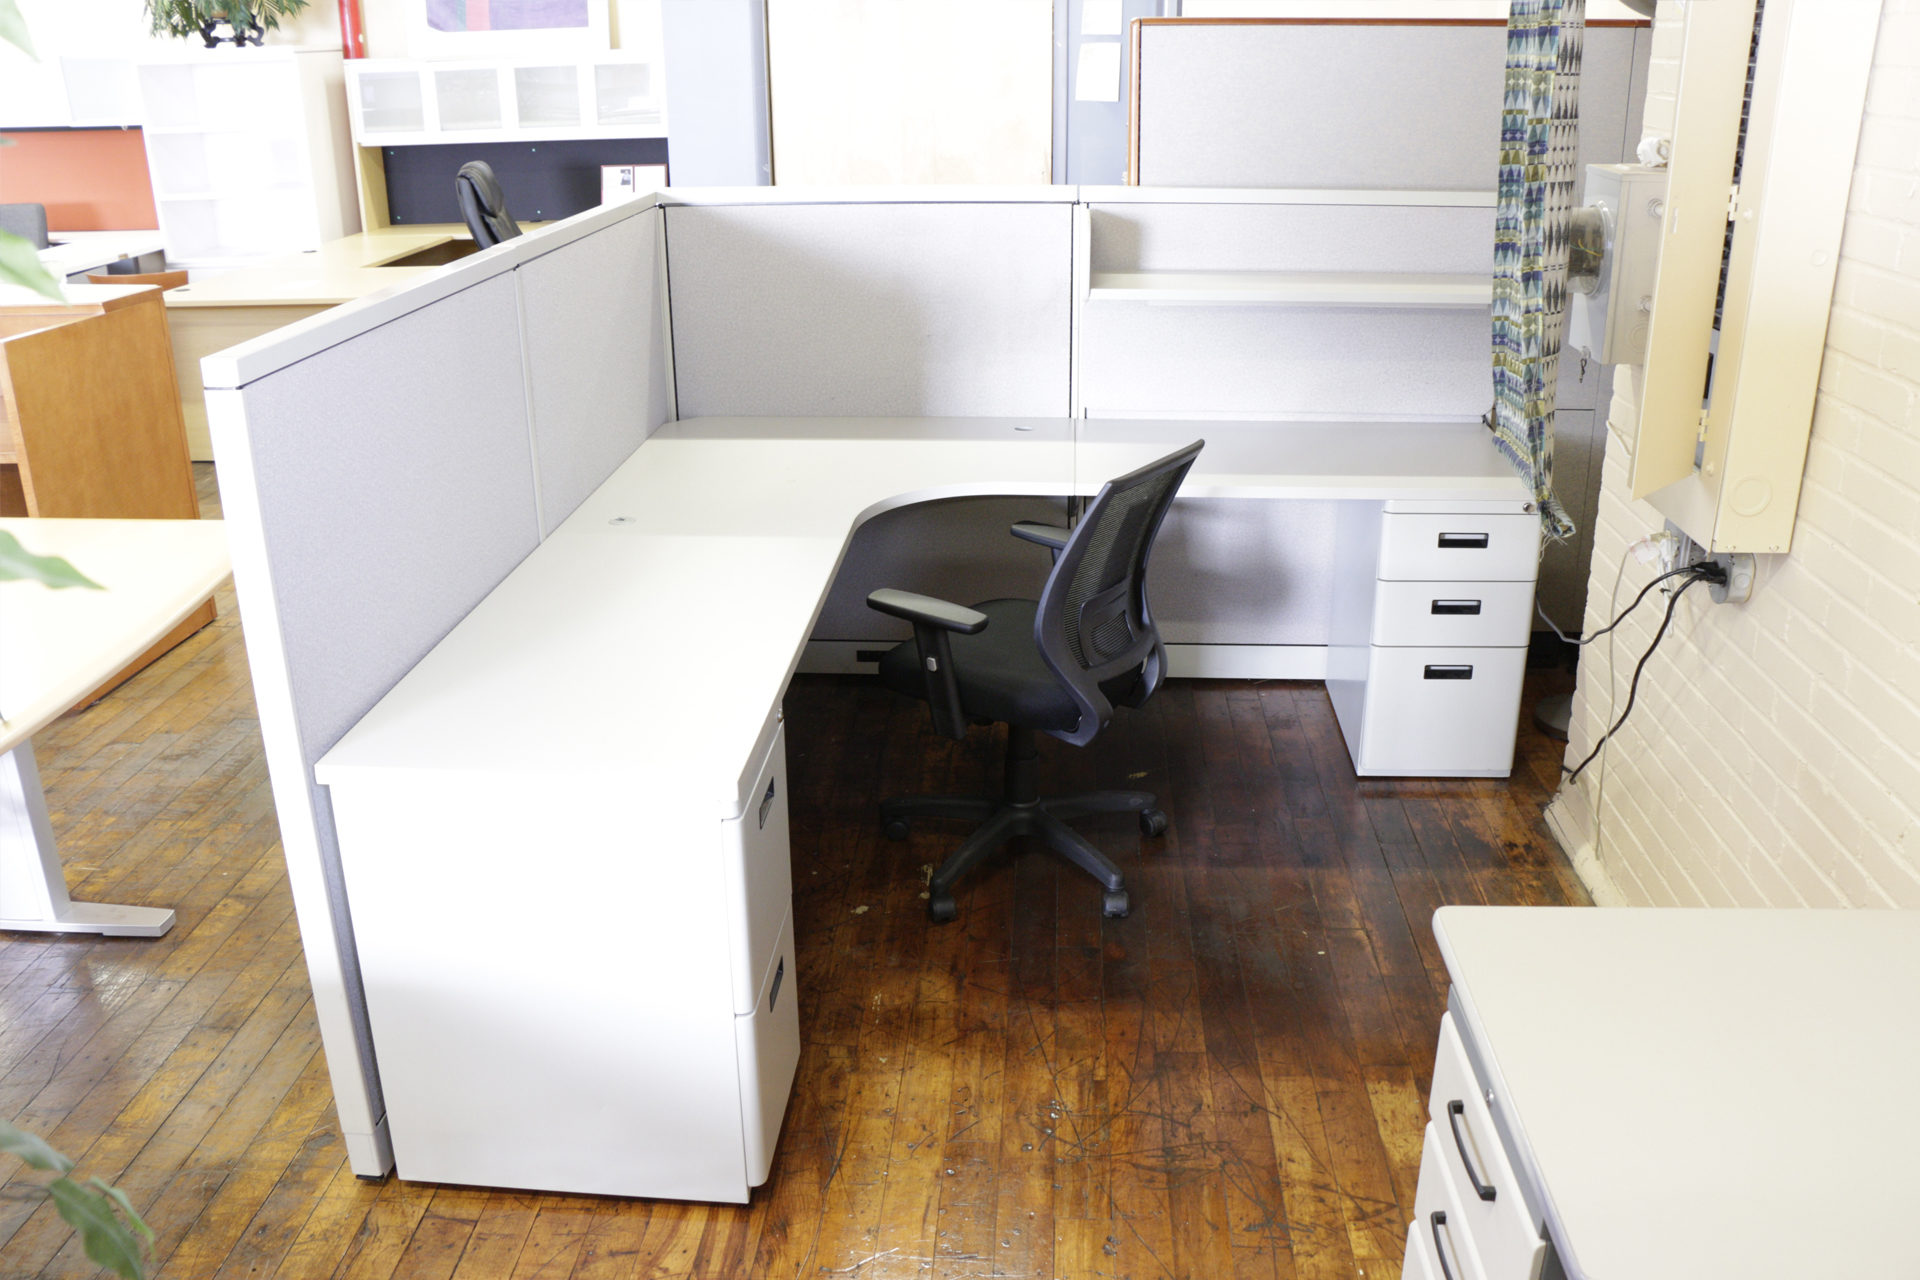 peartreeofficefurniture_peartreeofficefurniture_11.jpg